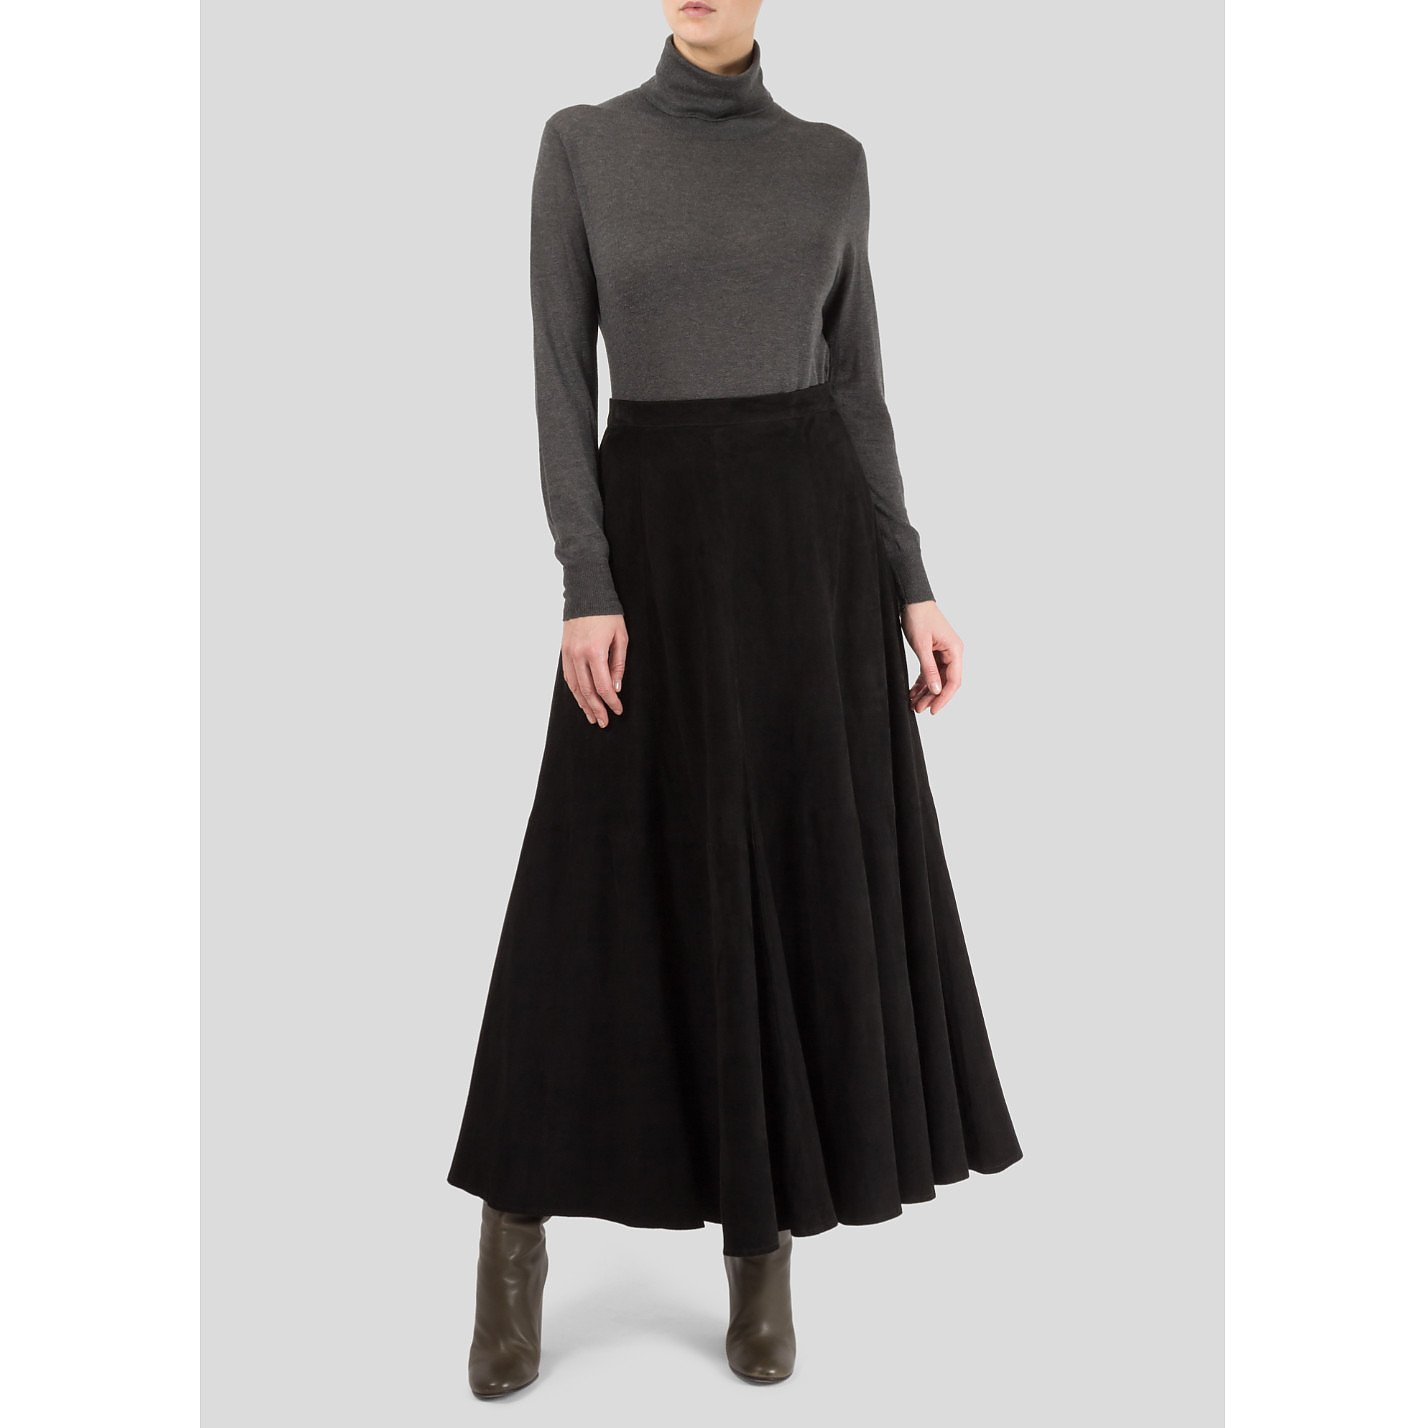 Anna Lascata Flared Suede Skirt